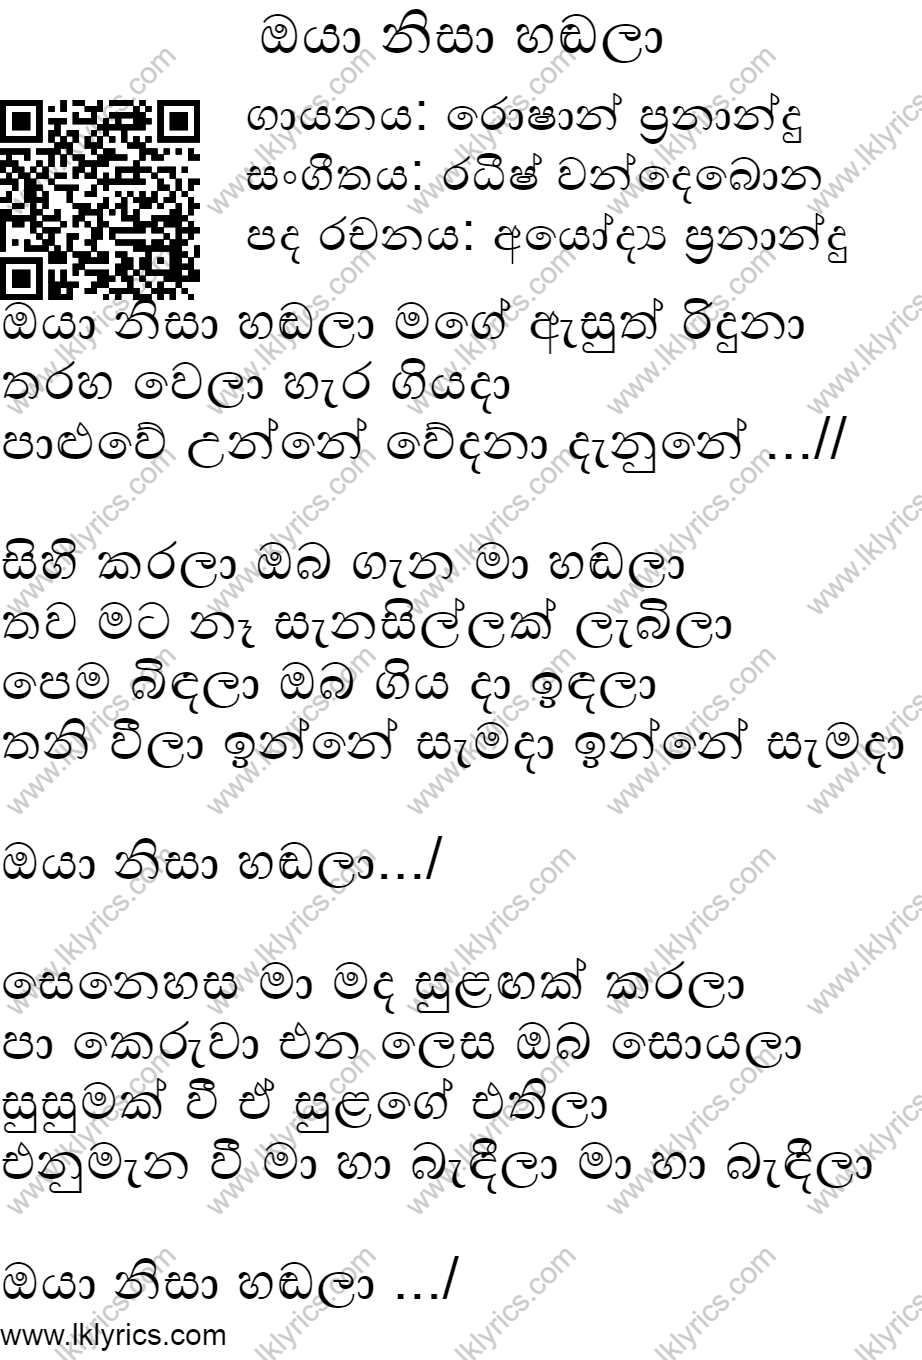 oya nisa hadala sinhala song mp3